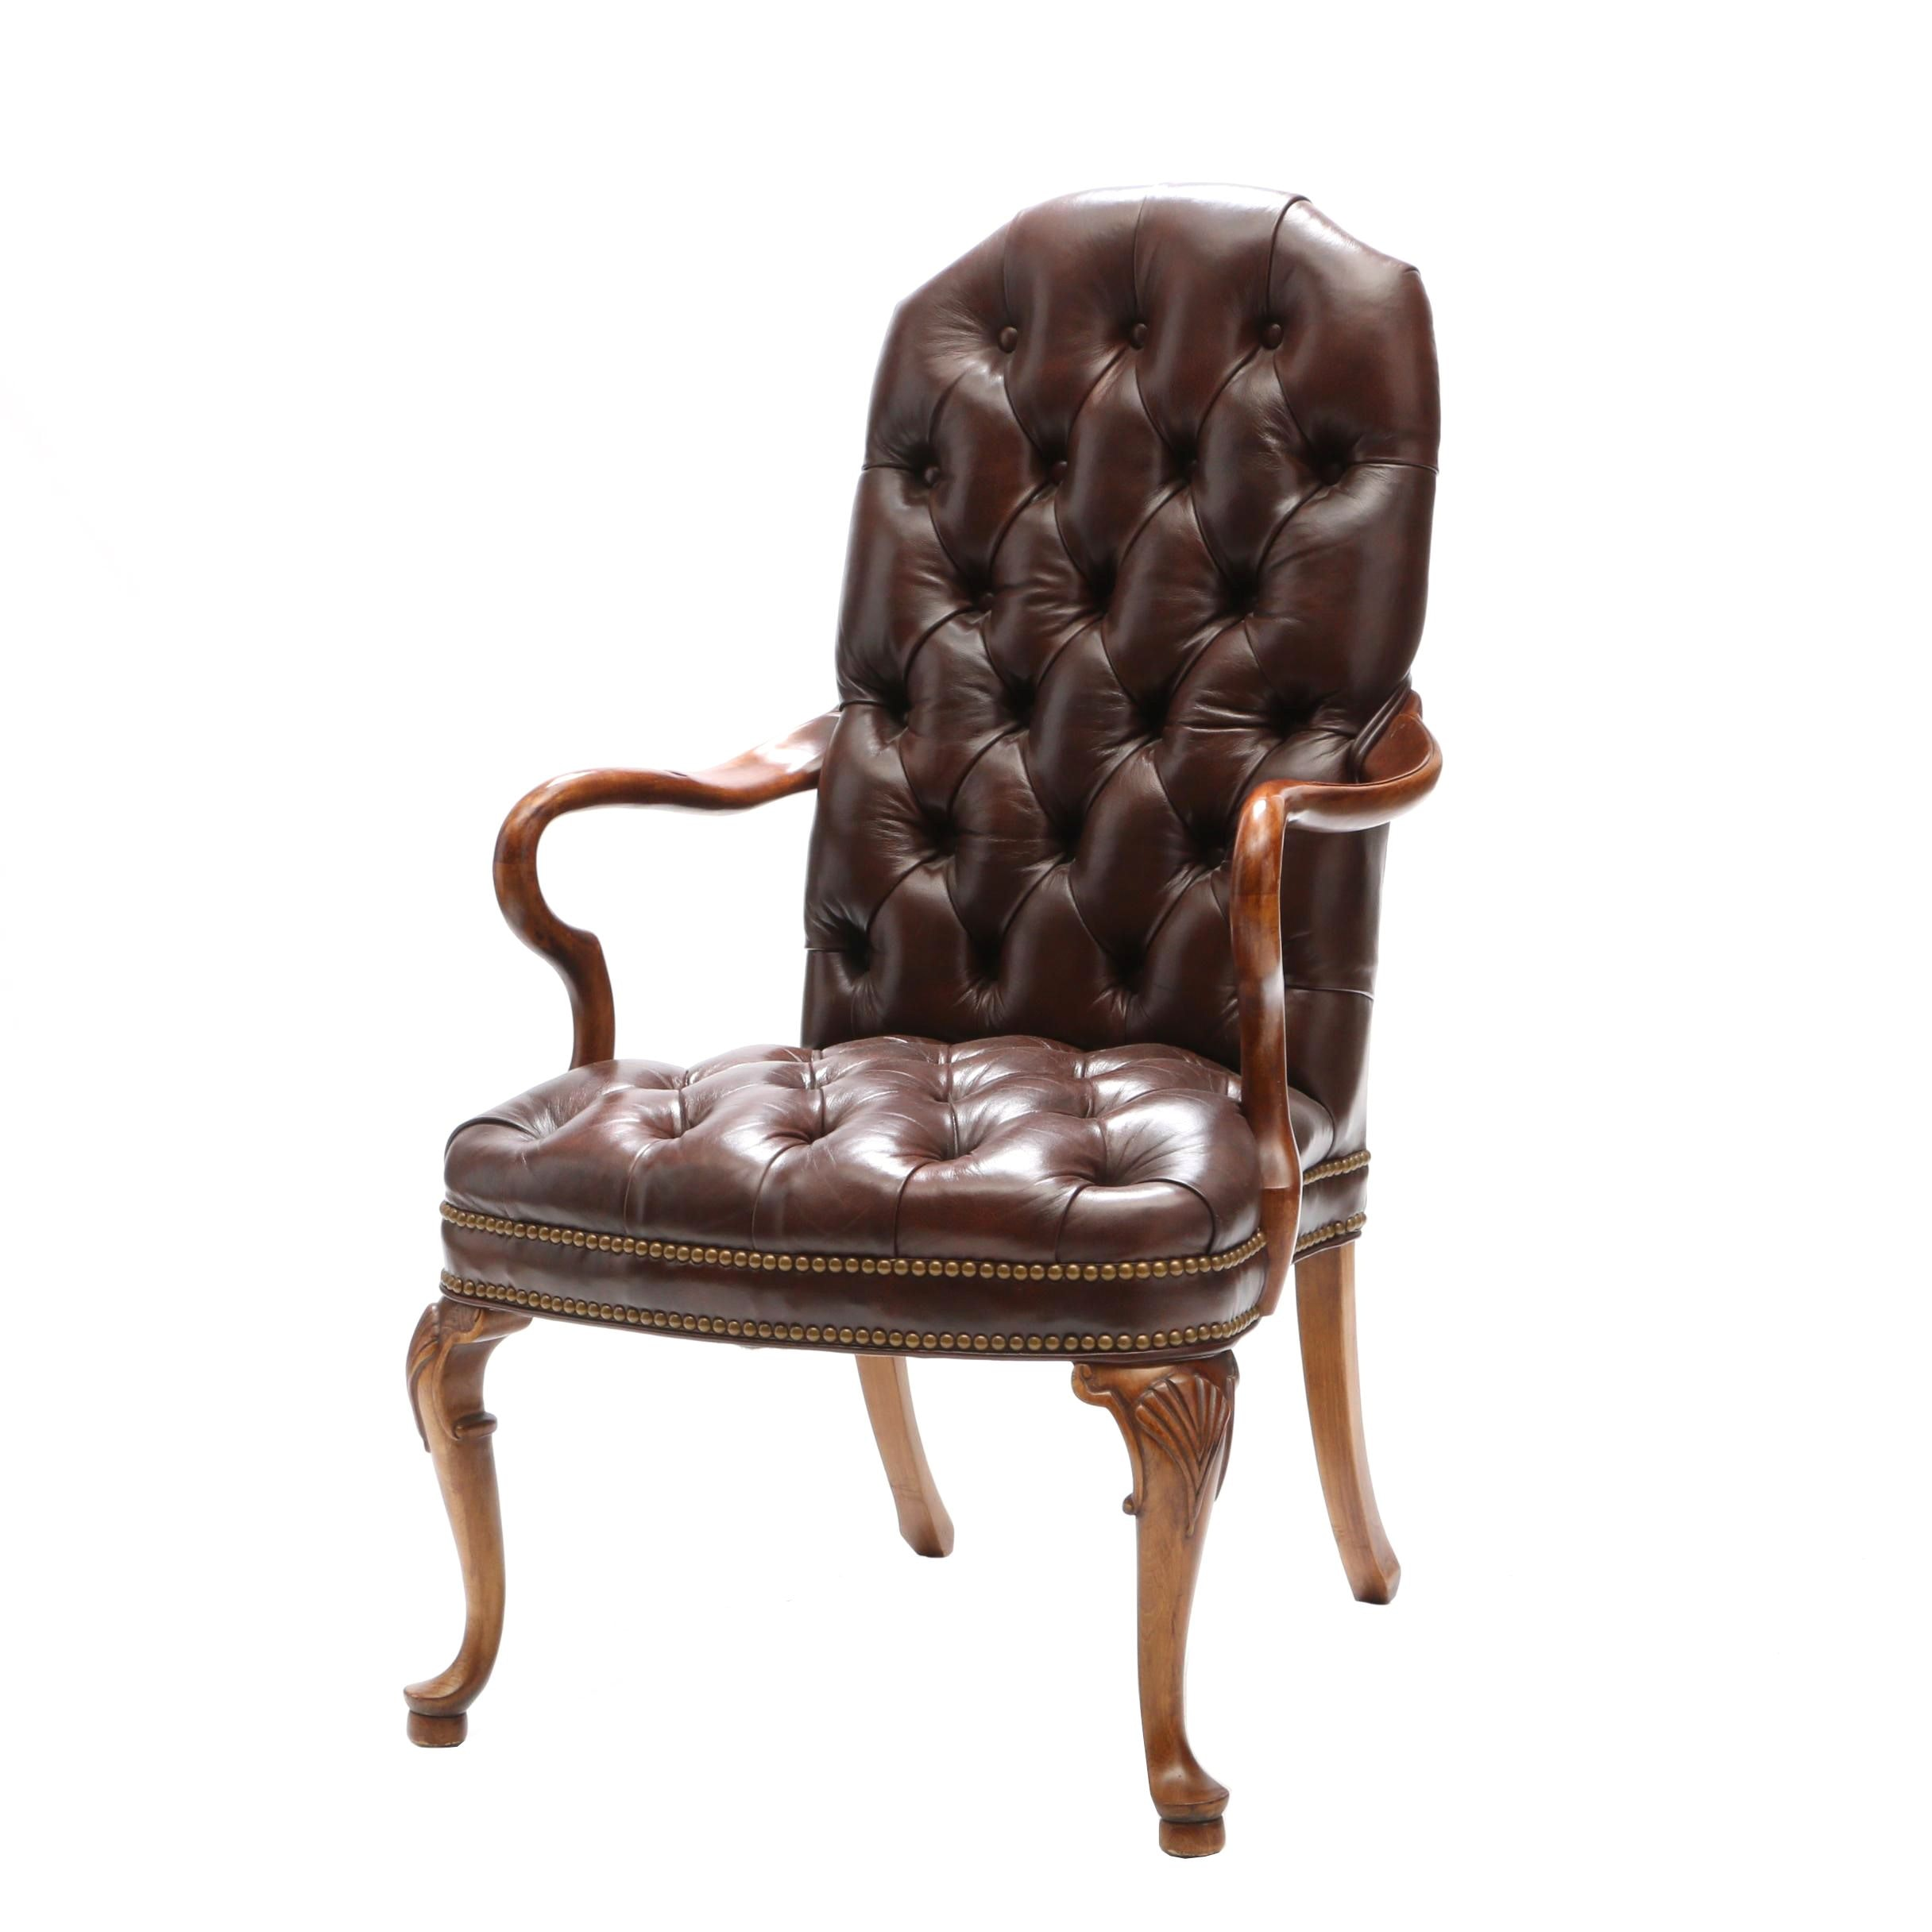 Chippendale Style Tufted Leather Arm Chair by Woodmark